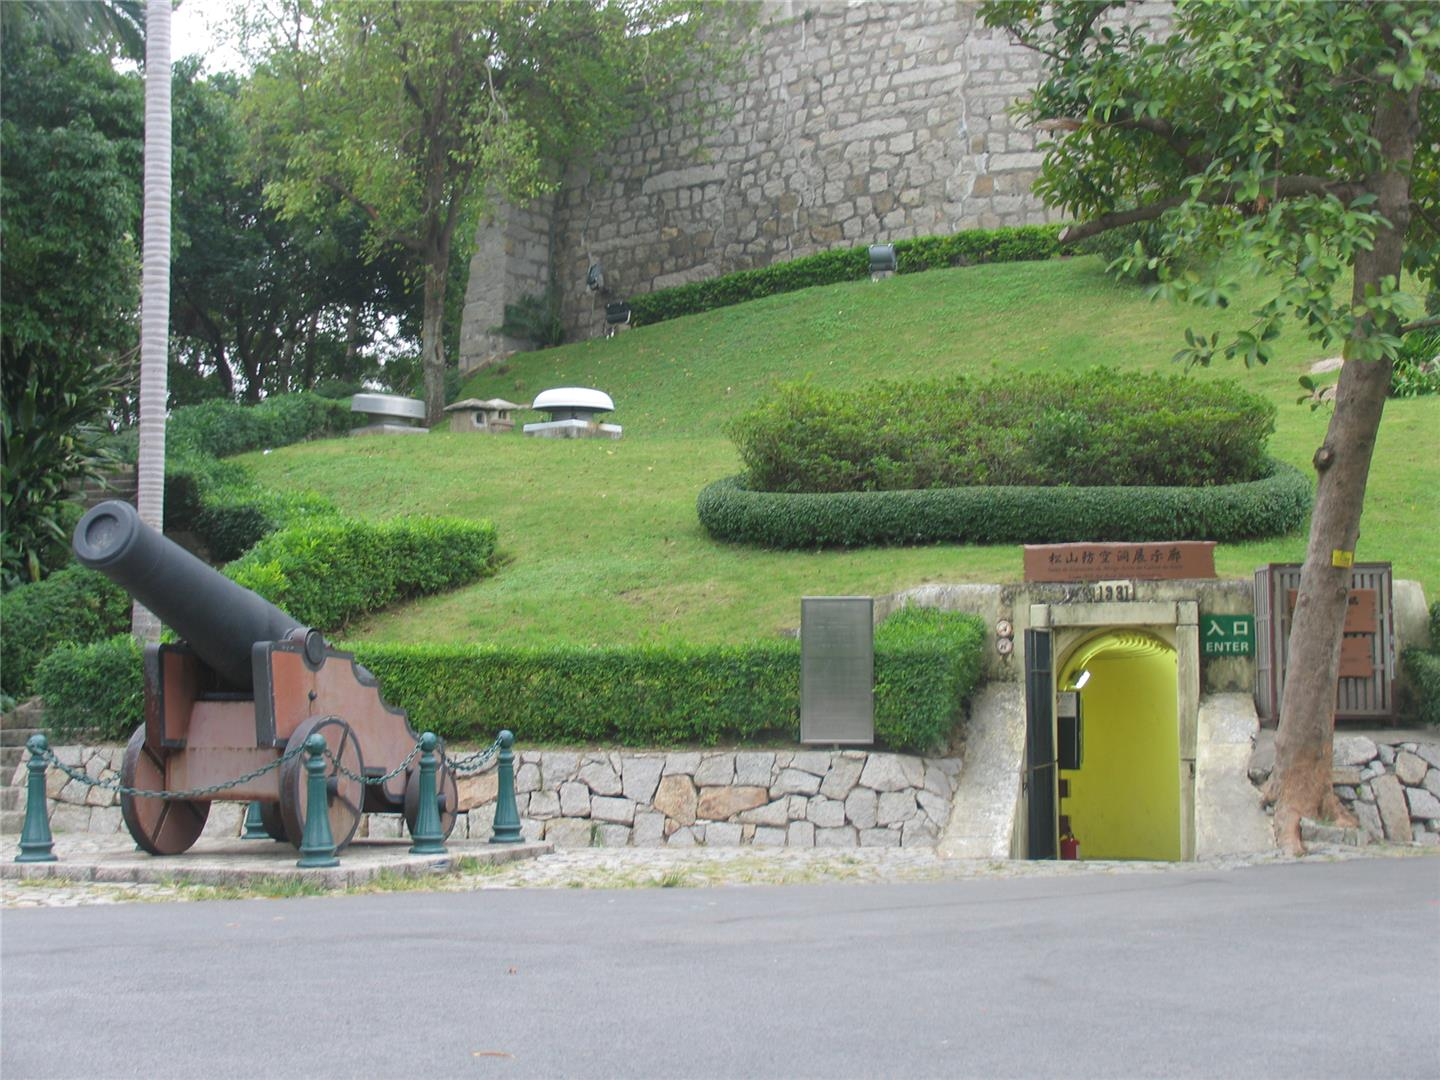 Guia Hill Military Tunnels (Temporarily closed)